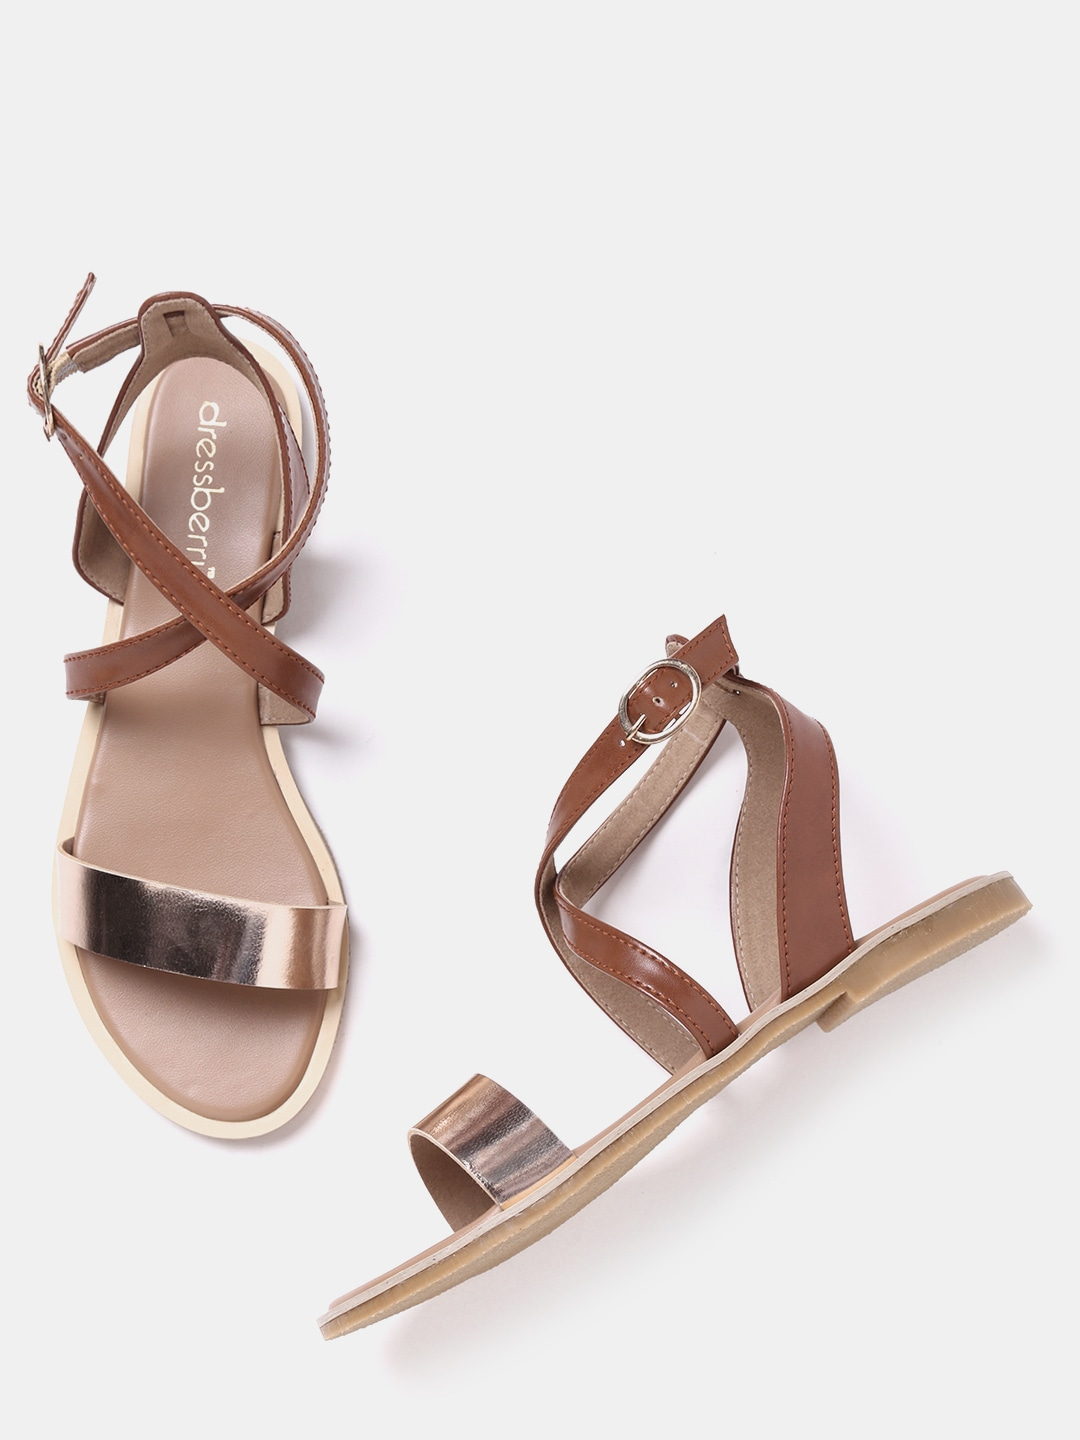 Brown & Rose Gold-Toned Colourblocked Flats